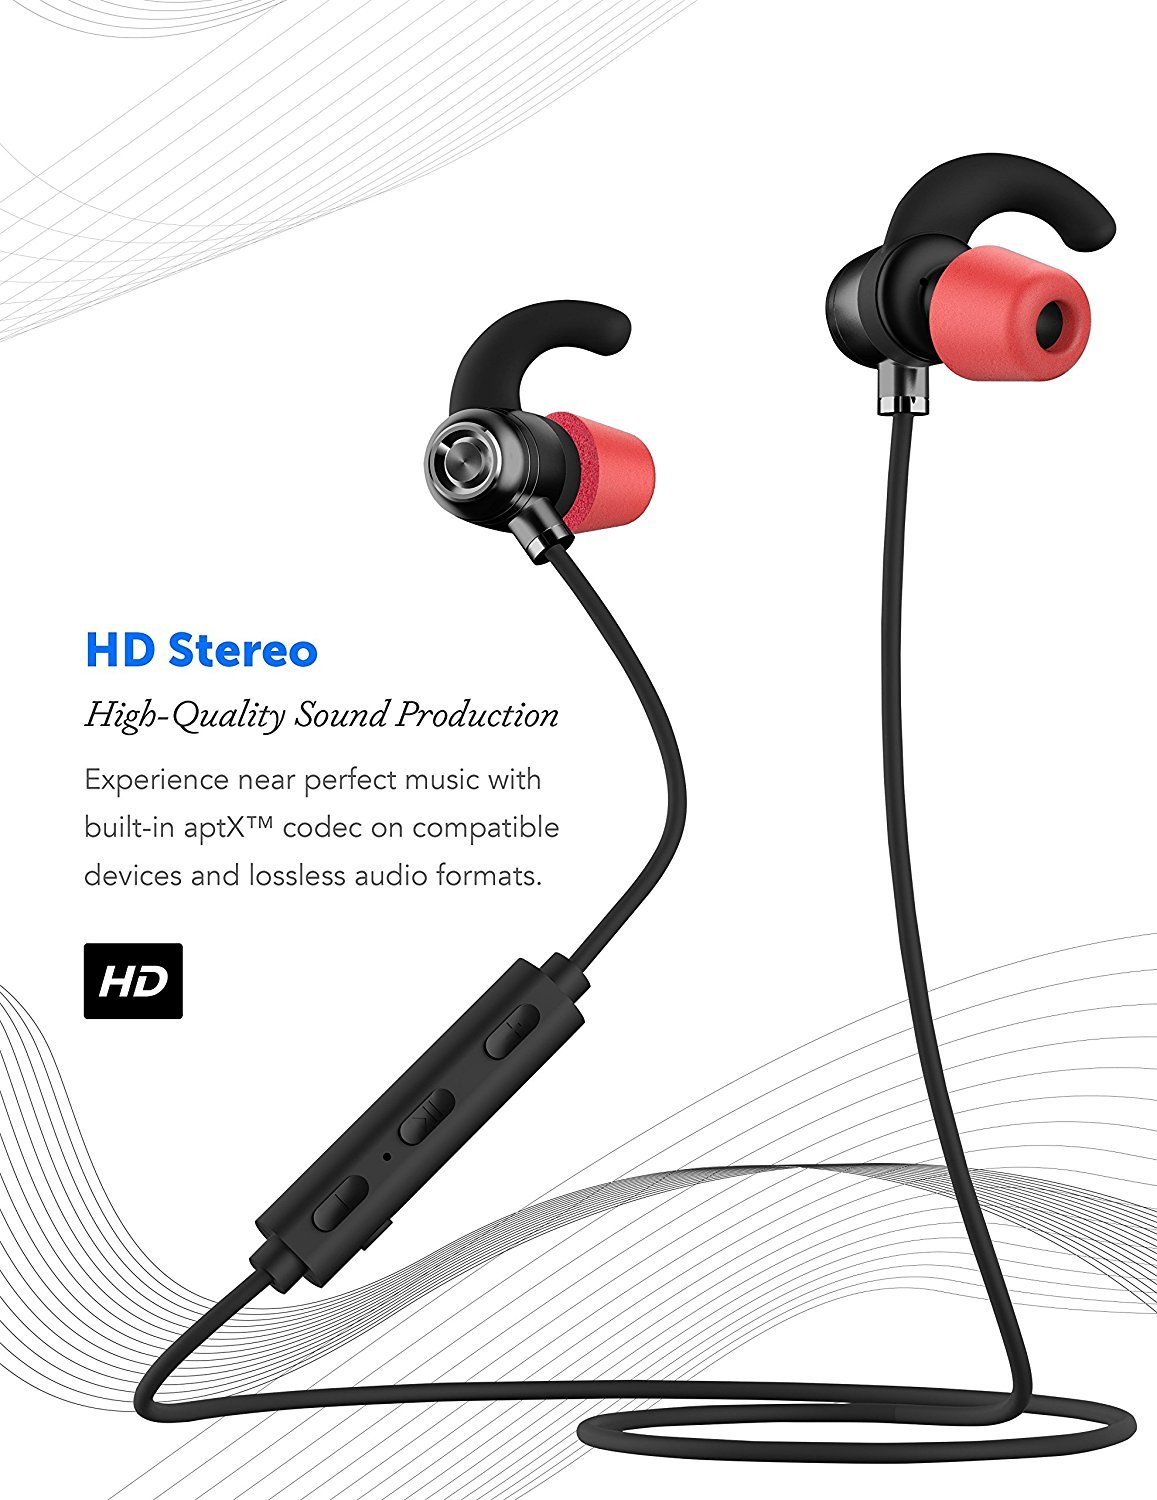 Sonim XP STRIKE Bluetooth Headset In-Ear Running Earbuds IPX4 Waterproof with Mic Stereo Earphones, CVC 6.0 Noise Cancellation, works with, Apple, Samsung,Google Pixel,LG by Ixir (Image #3)